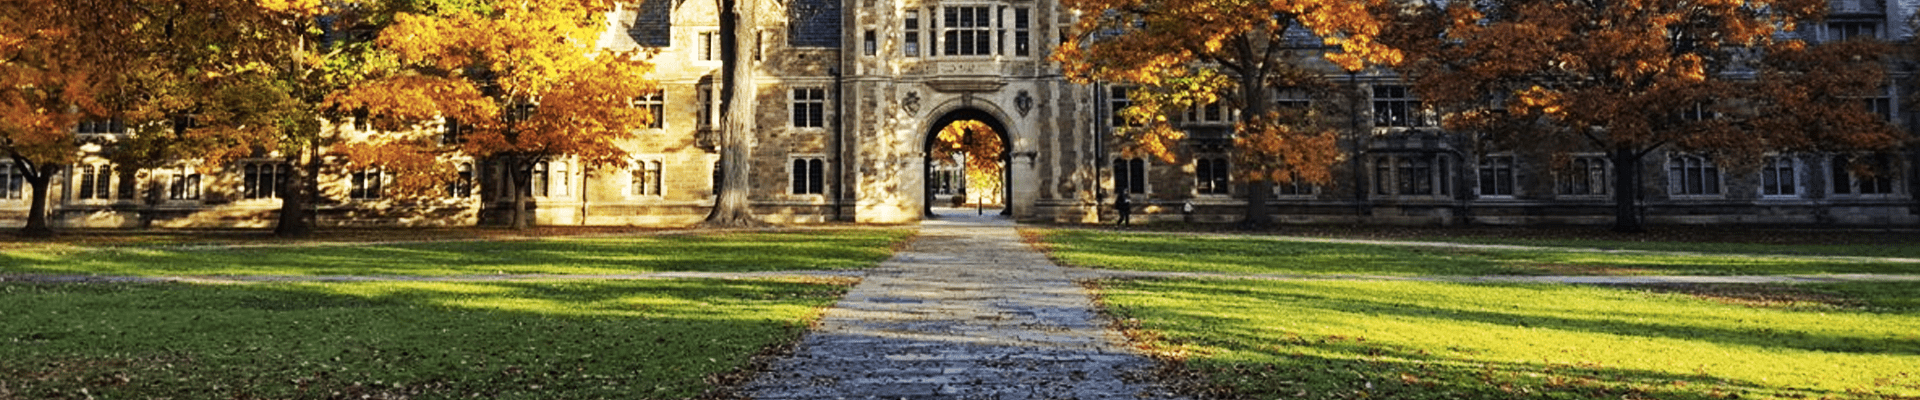 A college campus on a fall day with a stone pathway.